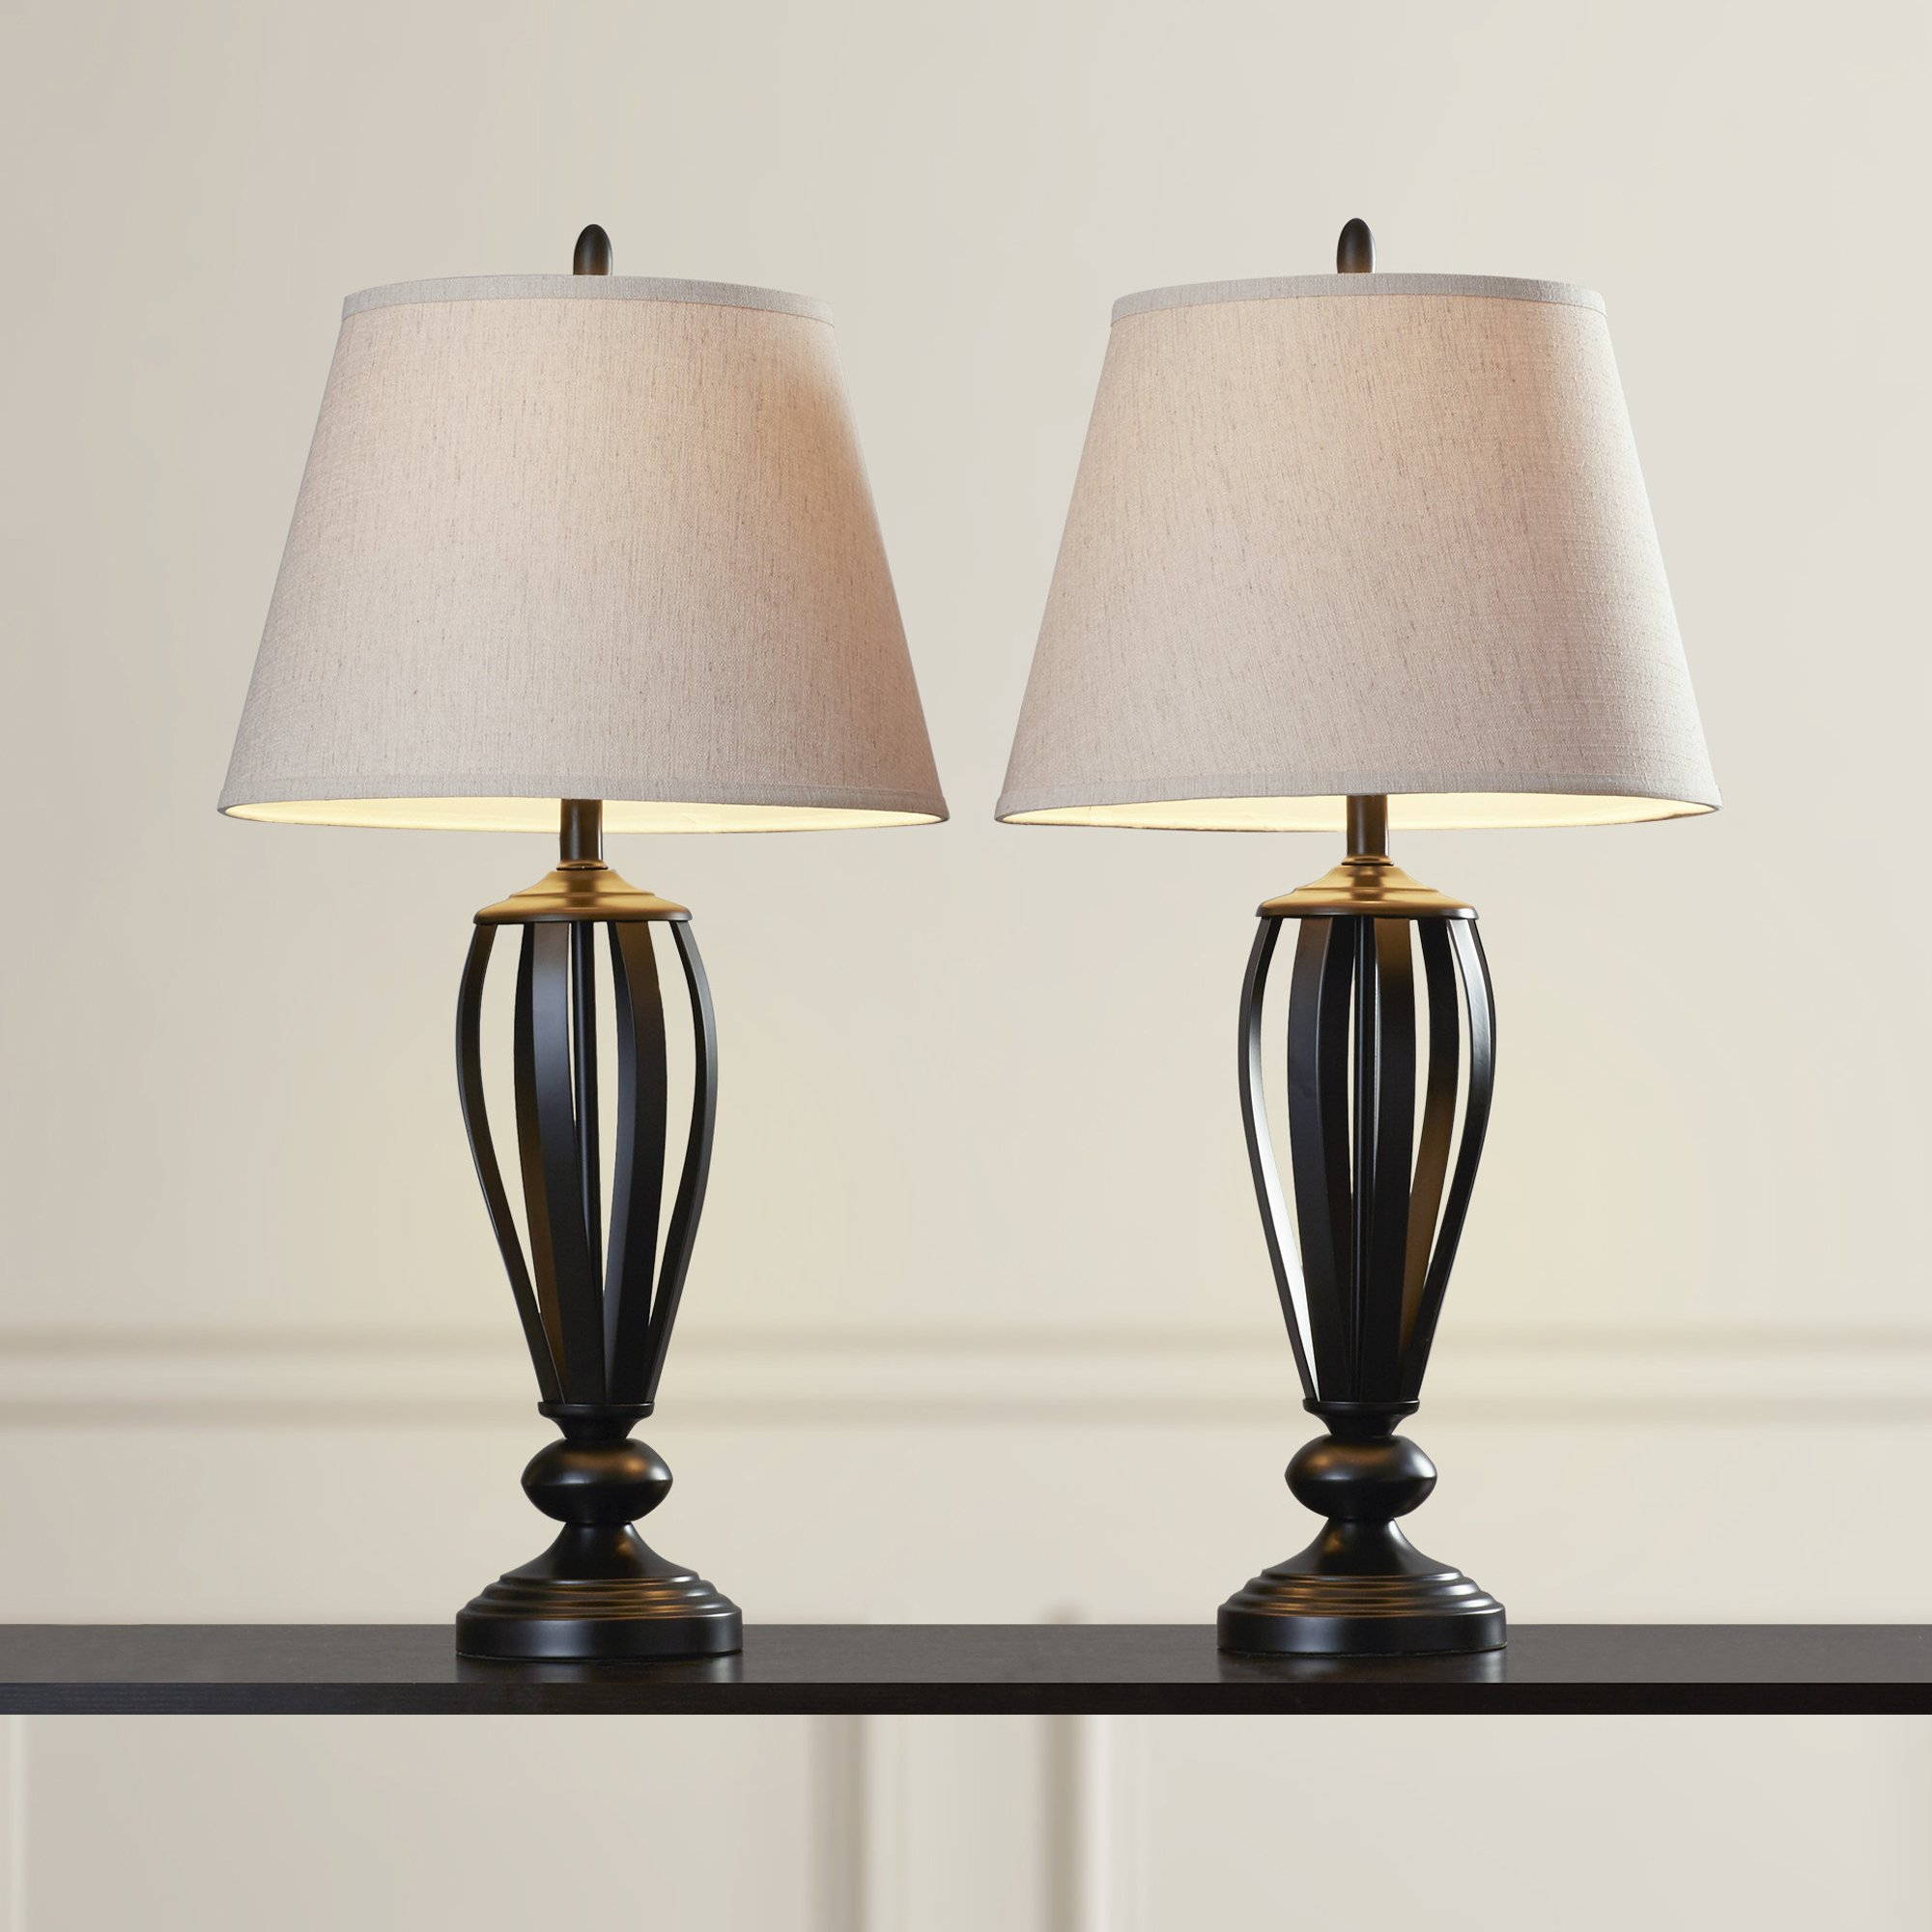 Contemporary Table Lamps - Set of 2 - Lightning For Your Bedroom Or Living Room - Empire Shade - Bronze Metal Base - 3-way Switch - 150 Watt max by ST Lightning